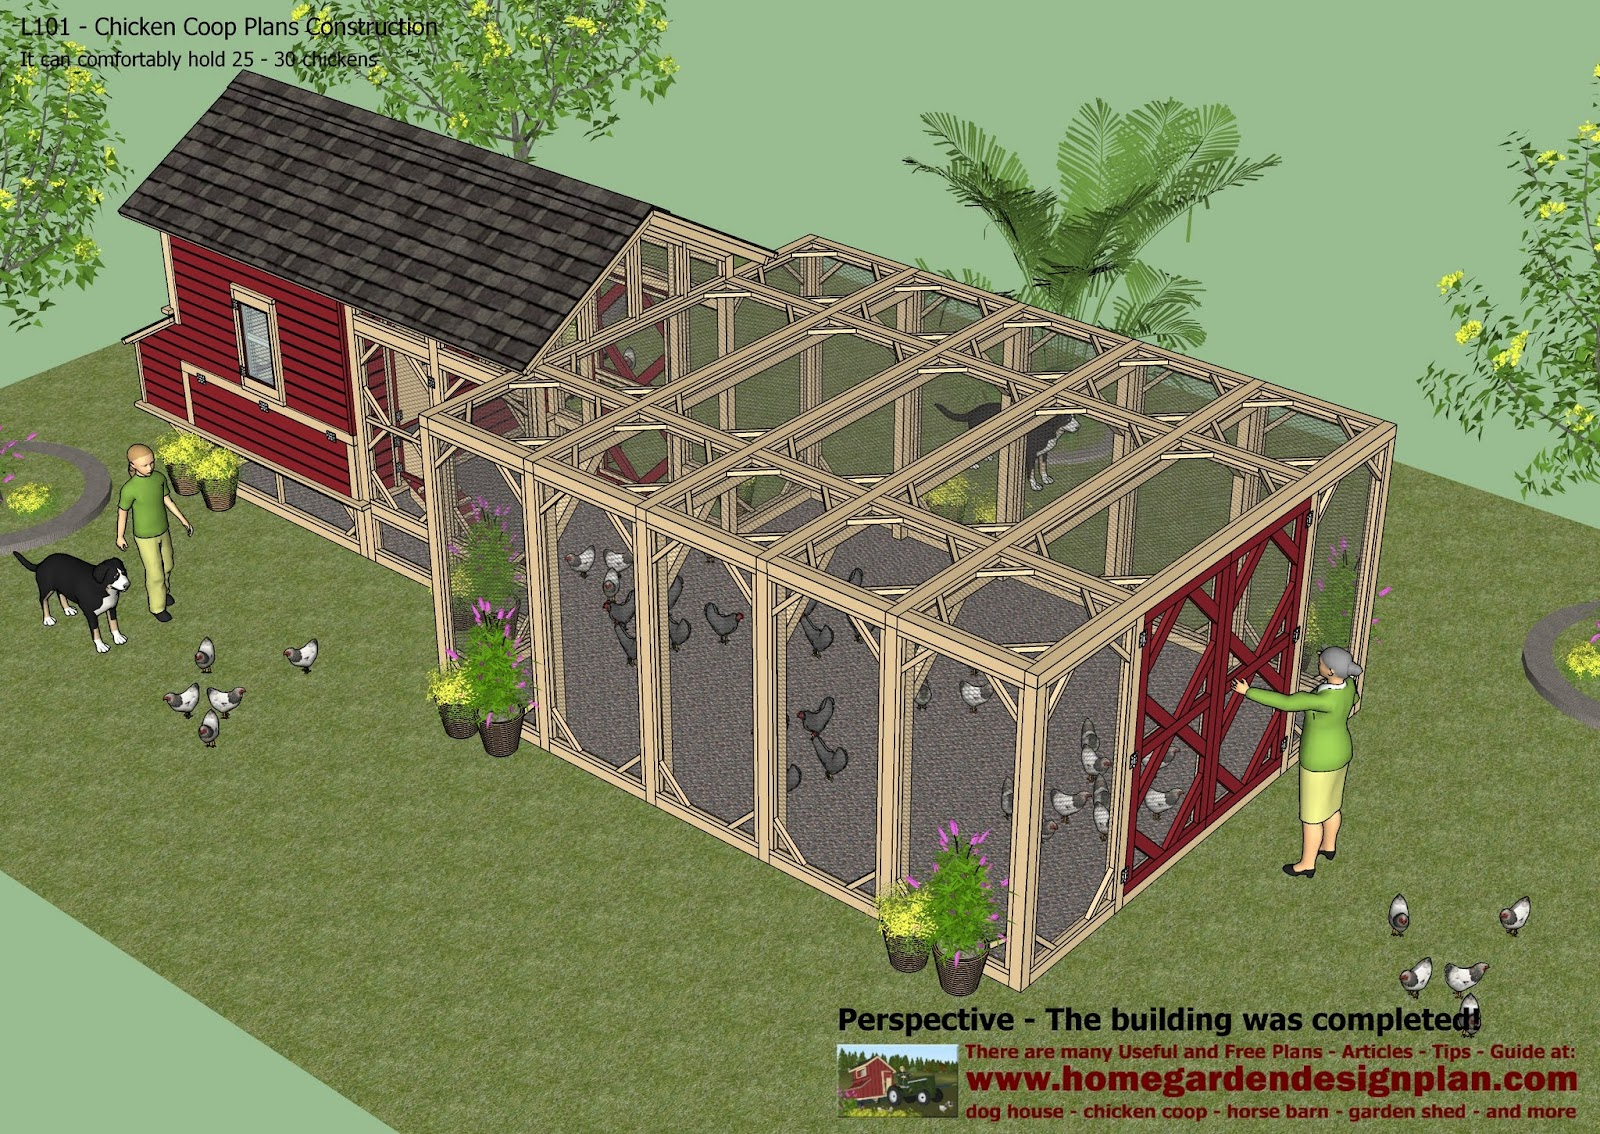 Hens Plans: How to build a chicken coop for 20